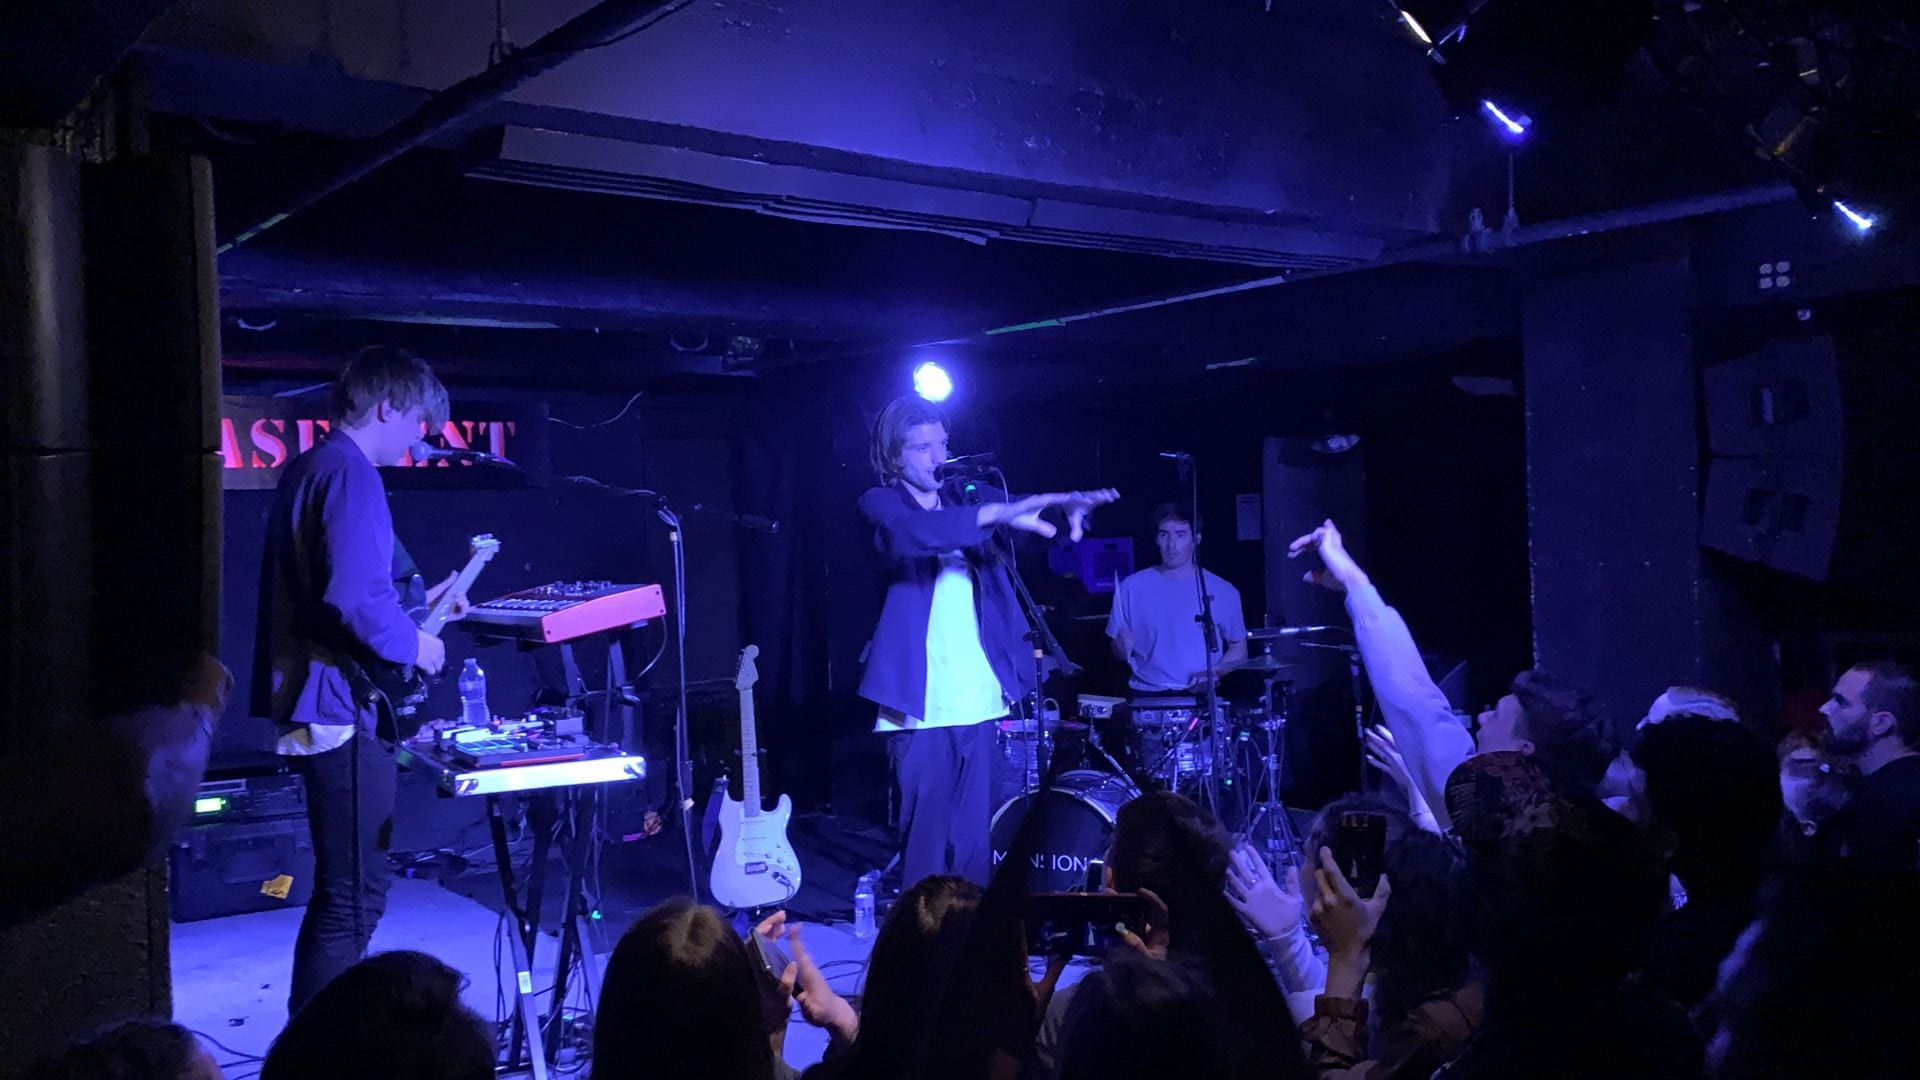 Concert Review: Mansionair provides Columbus with a night of